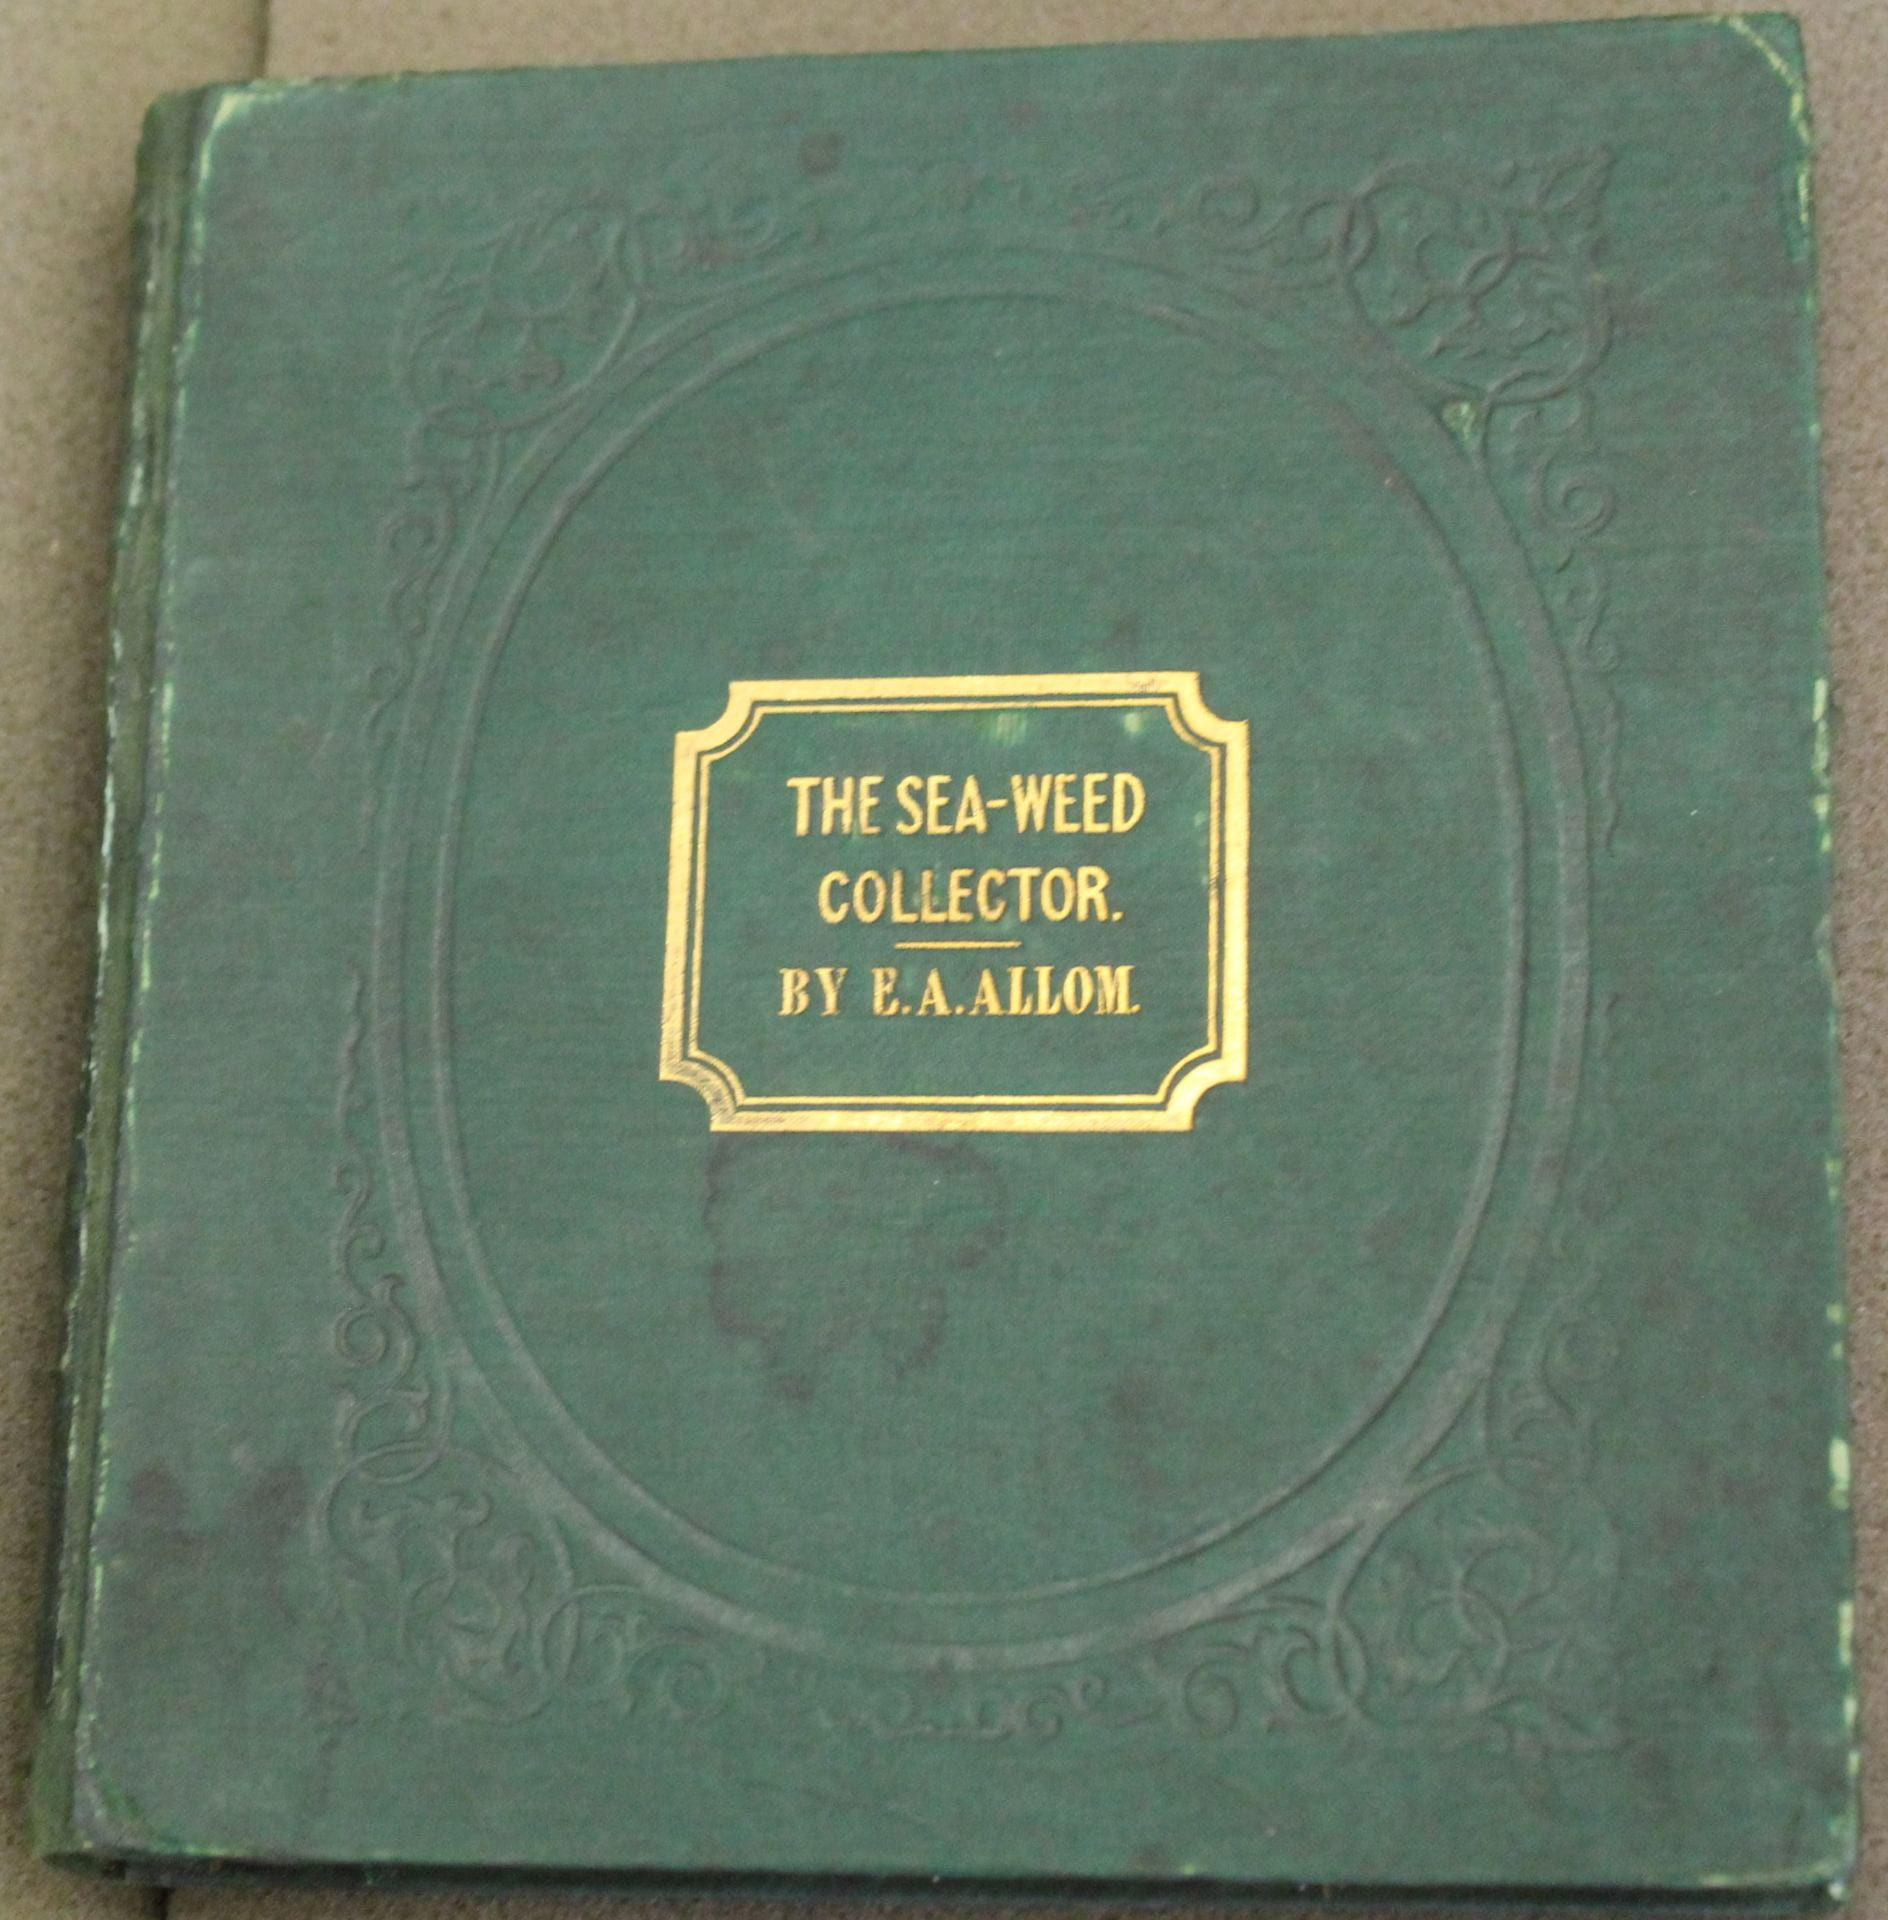 An image of a green book with a florally embossed cover, the title stamped in gold, and water stains.